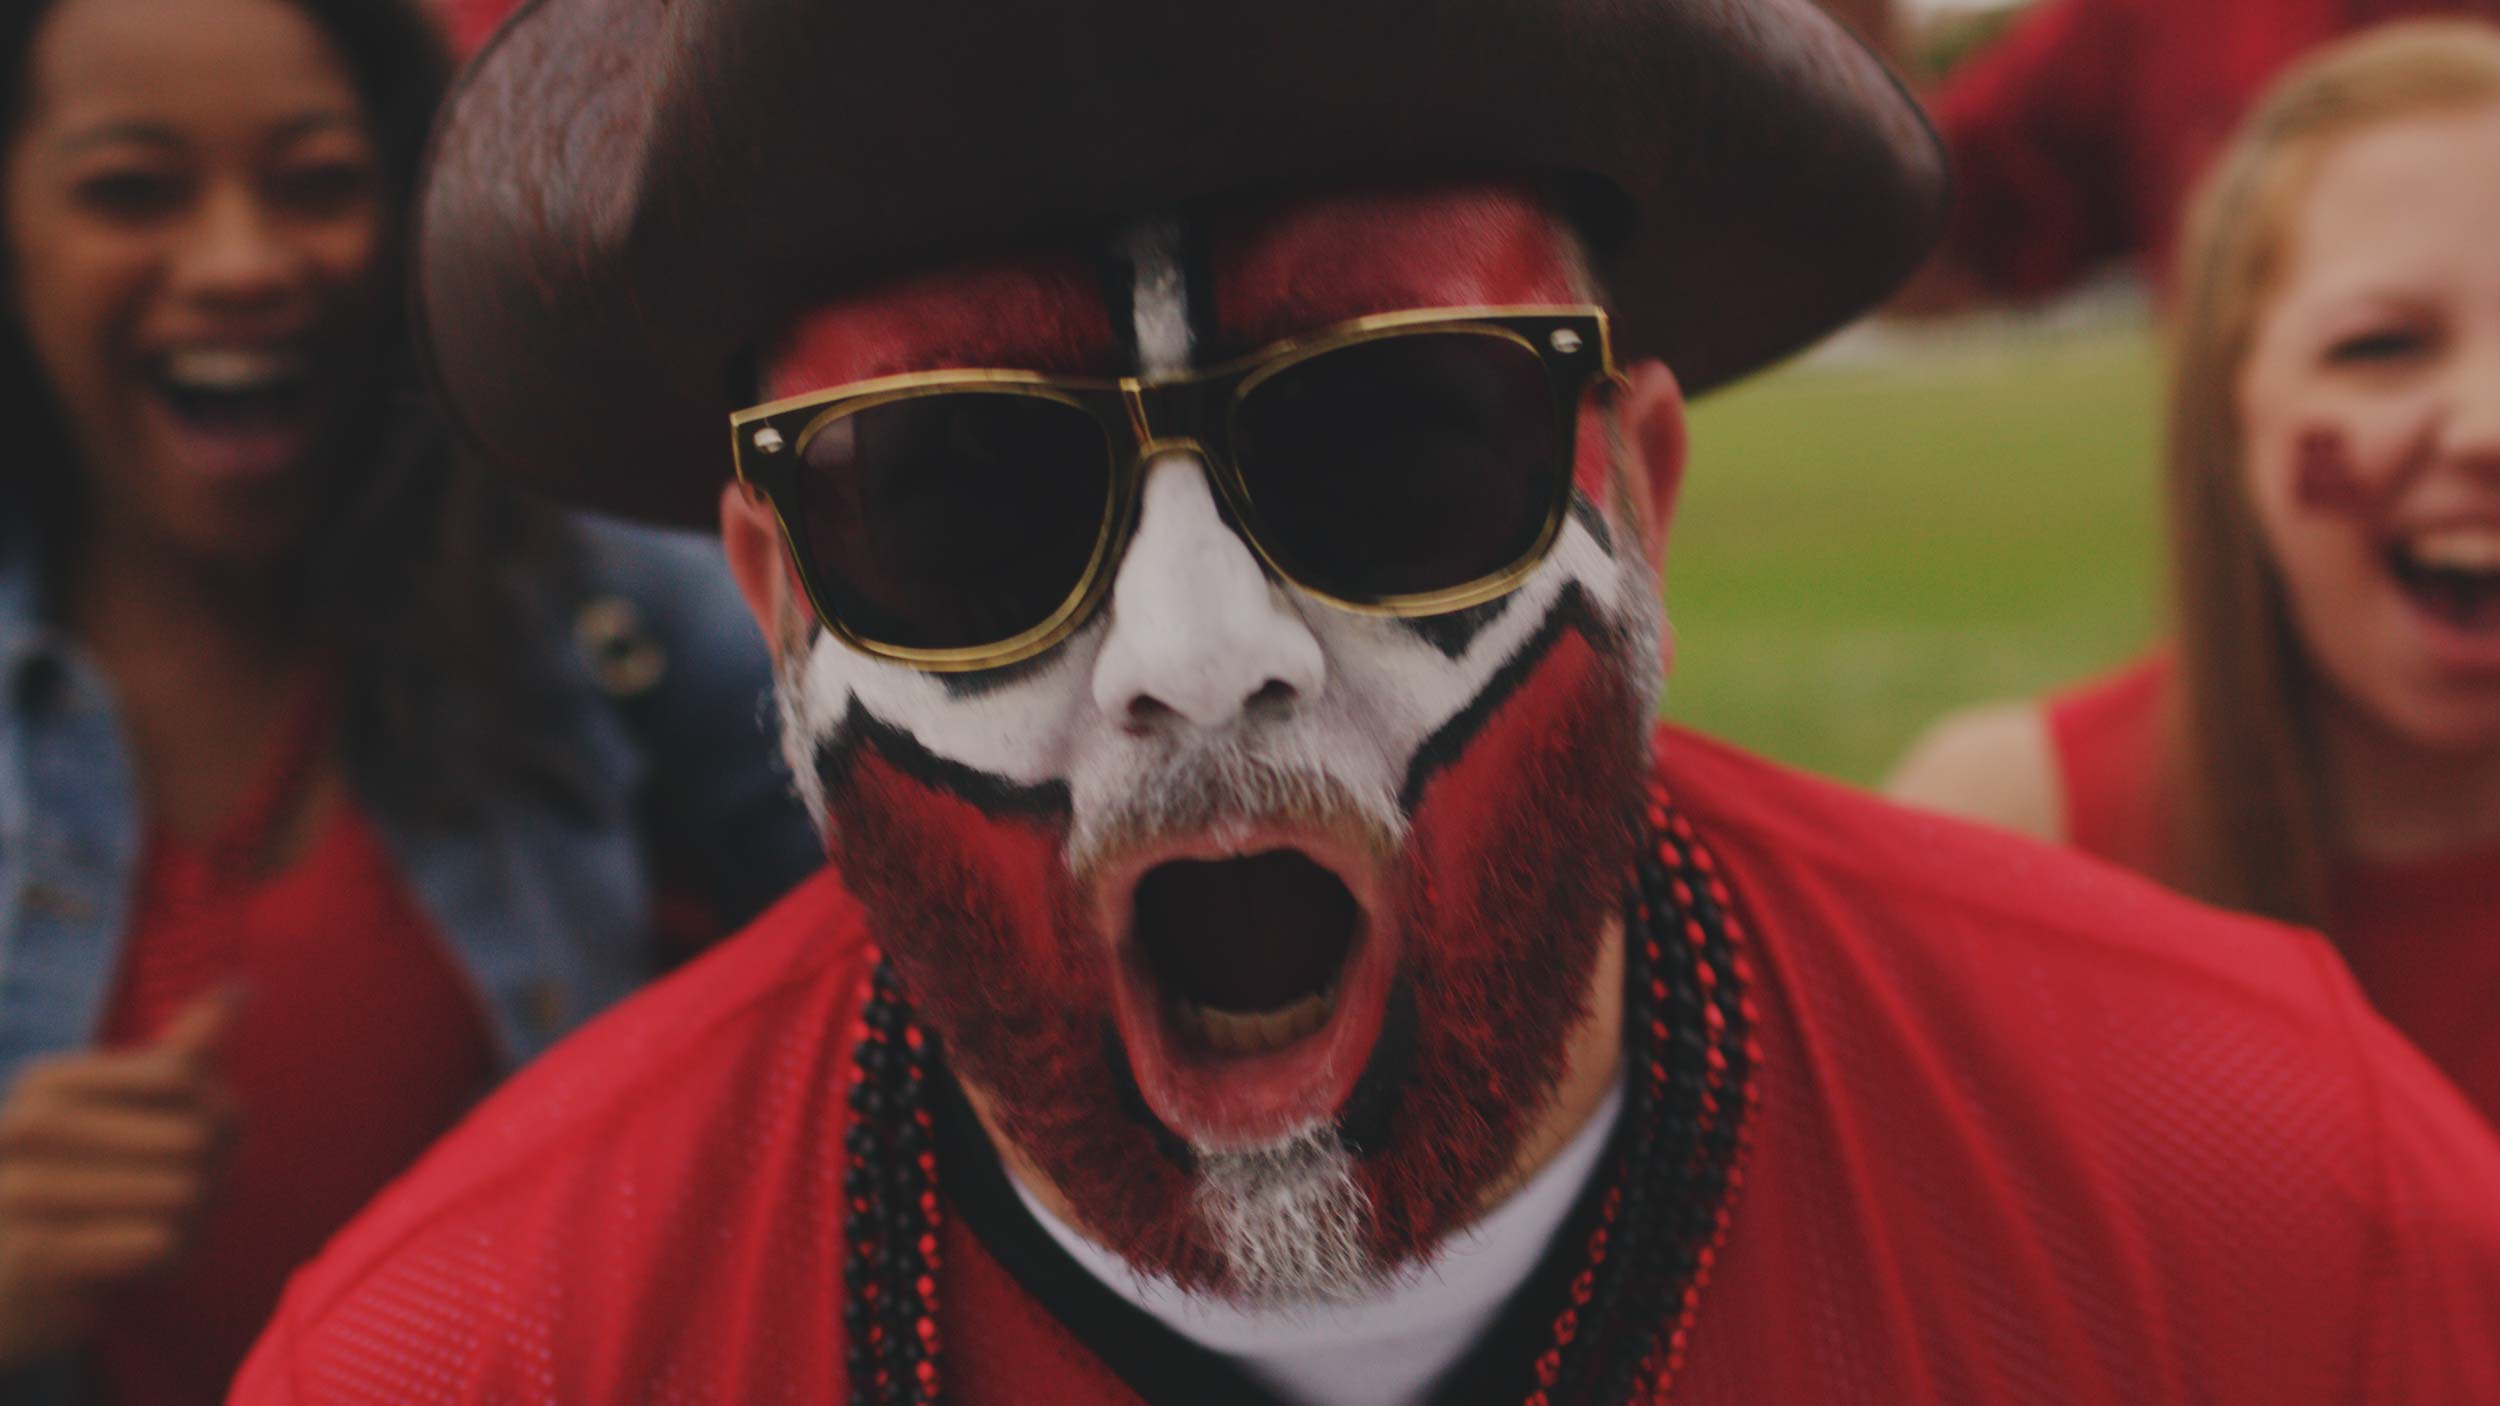 bucs fan with face painted yelling into camera